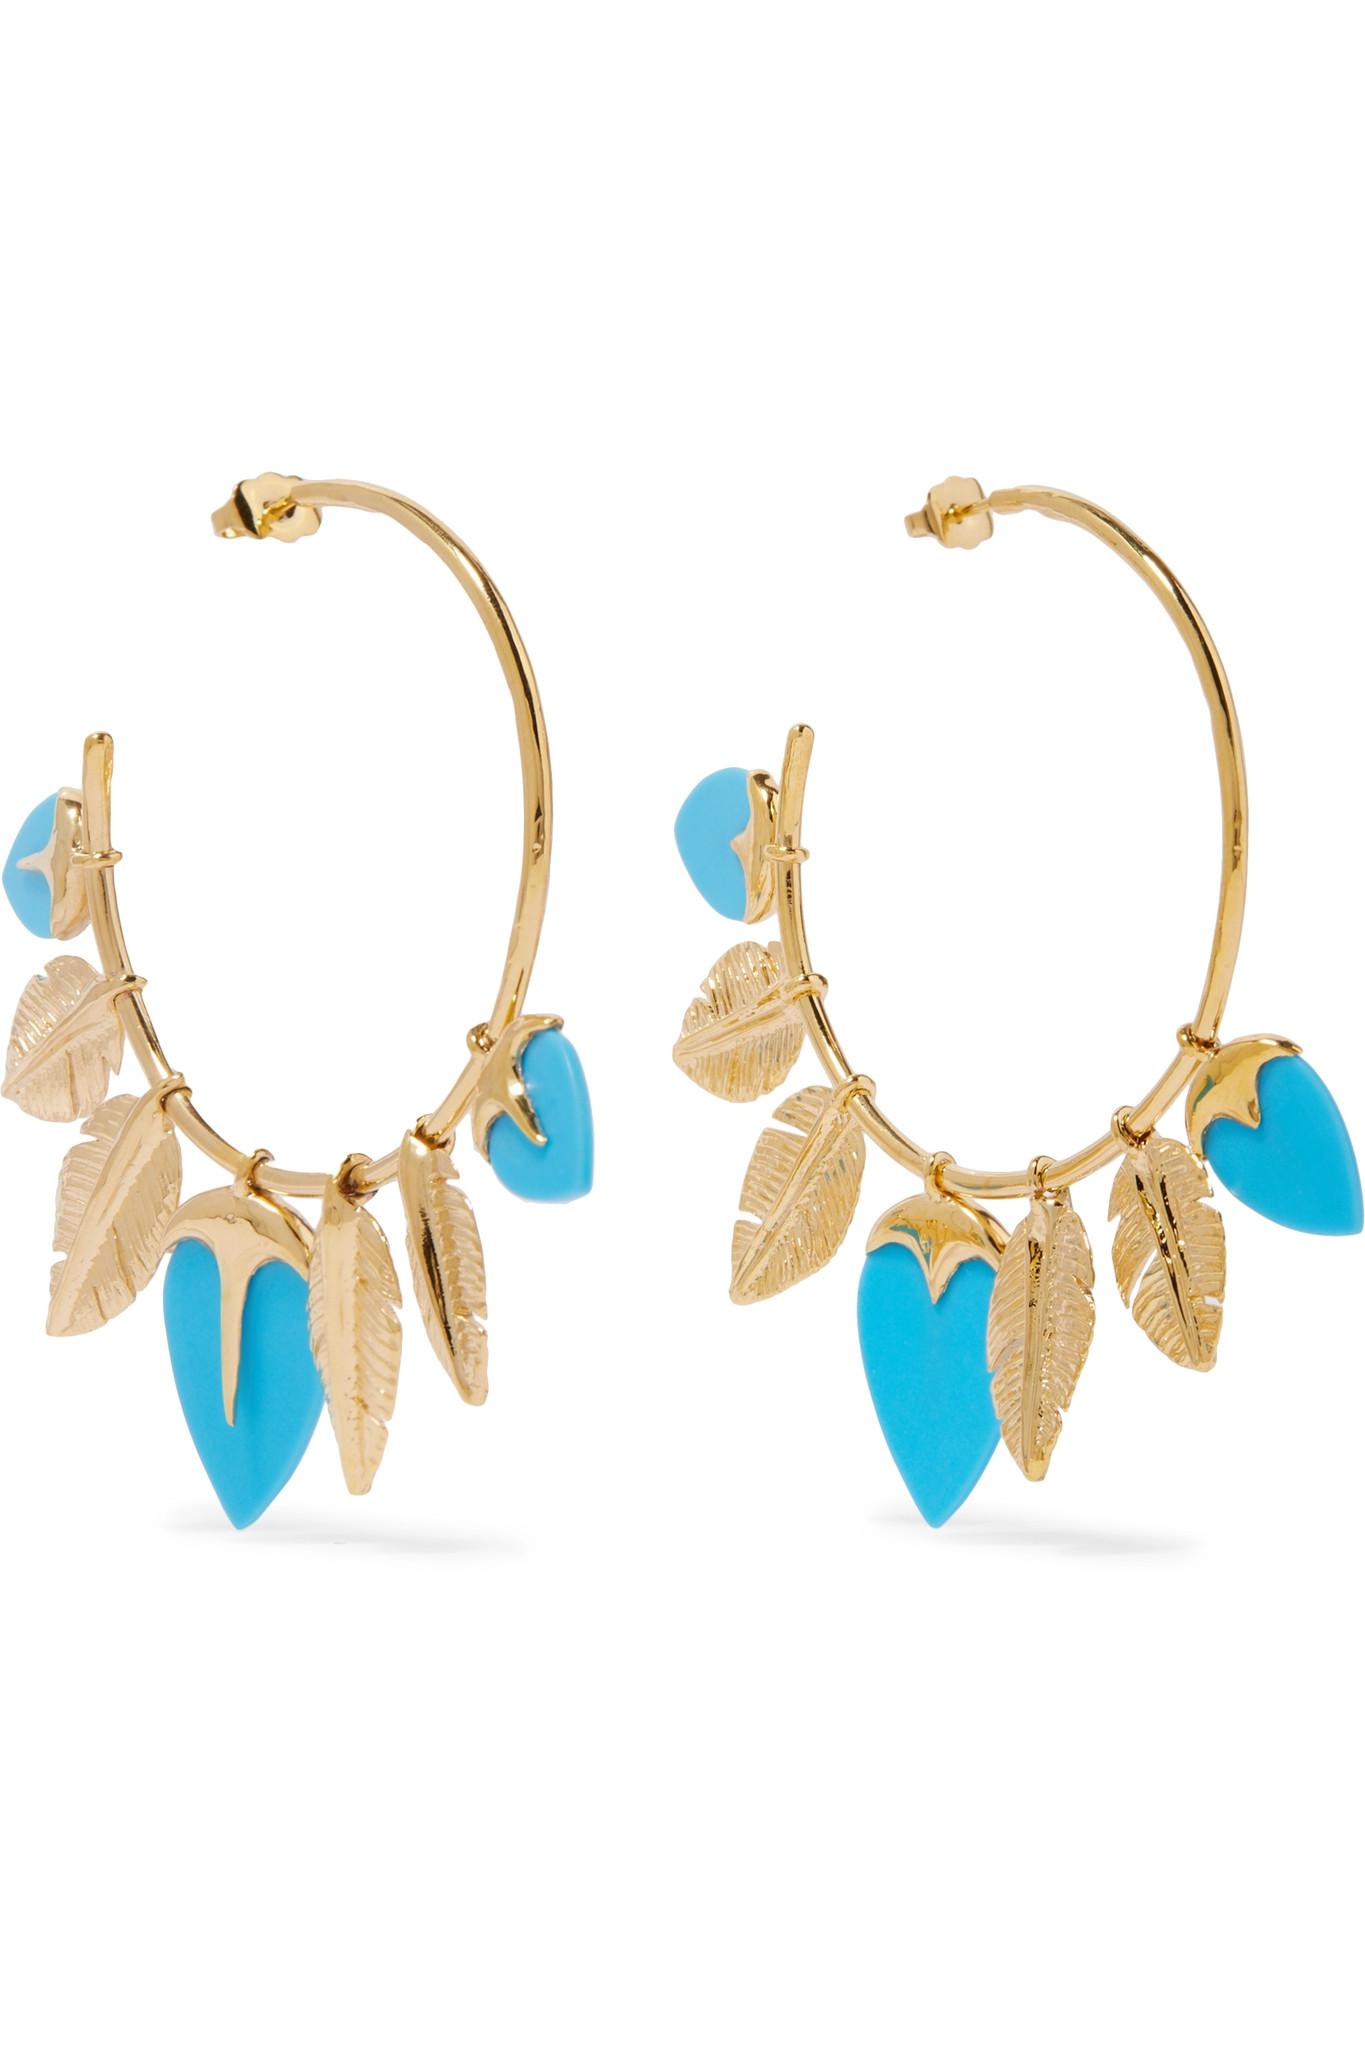 Aurélie Bidermann Talitha Gold-Tone Turquoise Earrings hfqKeipW5